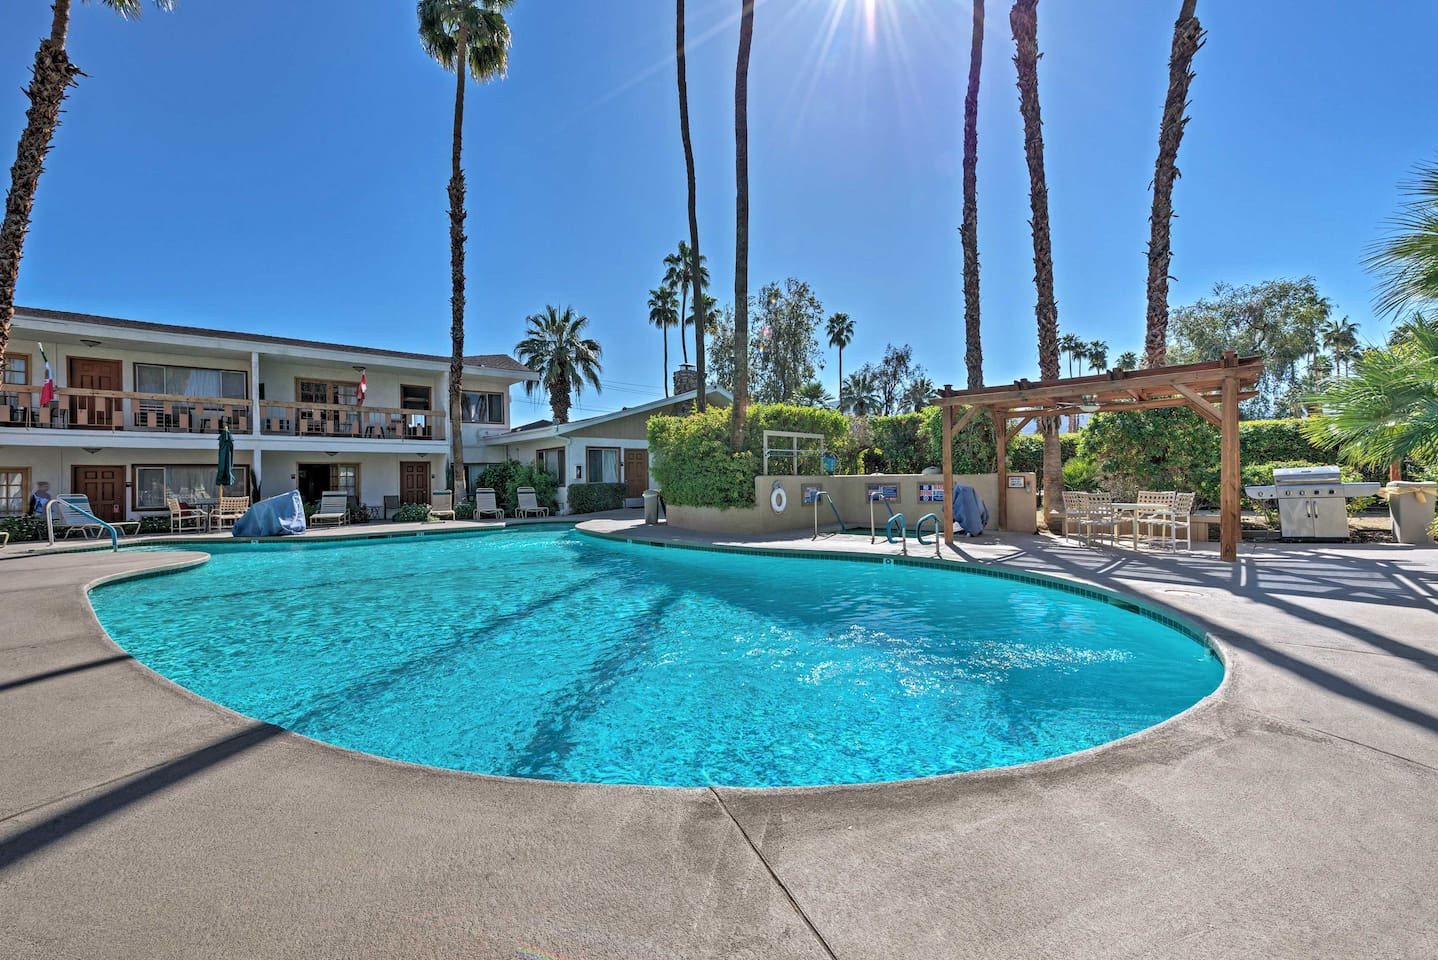 Plan your next Palm Desert getaway at this quaint studio near El Paseo!